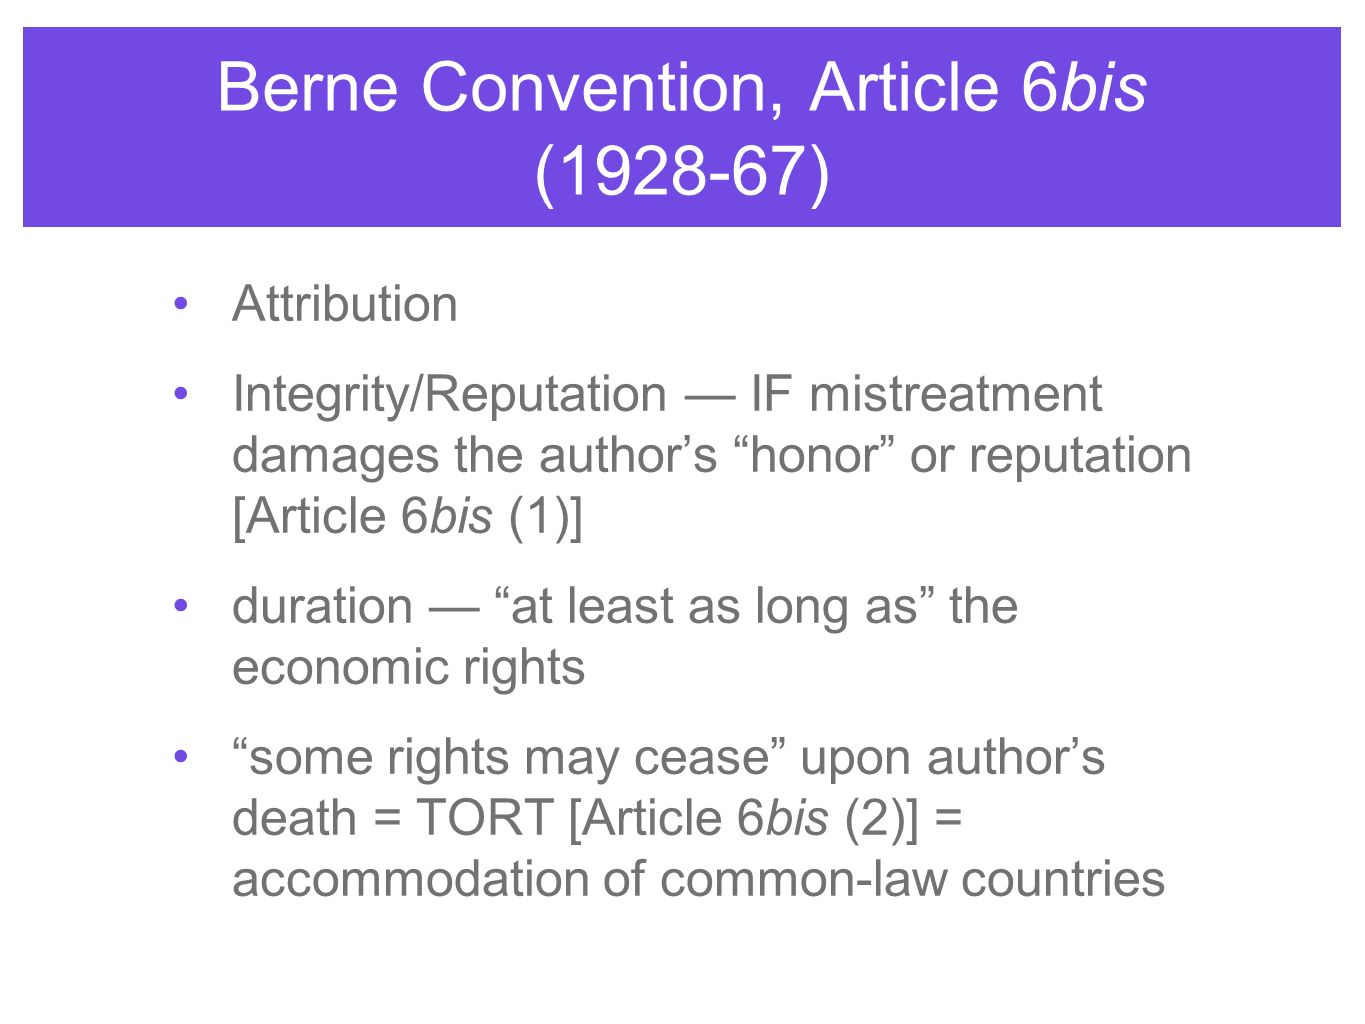 Berne Convention, Article 6bis (1928-67)